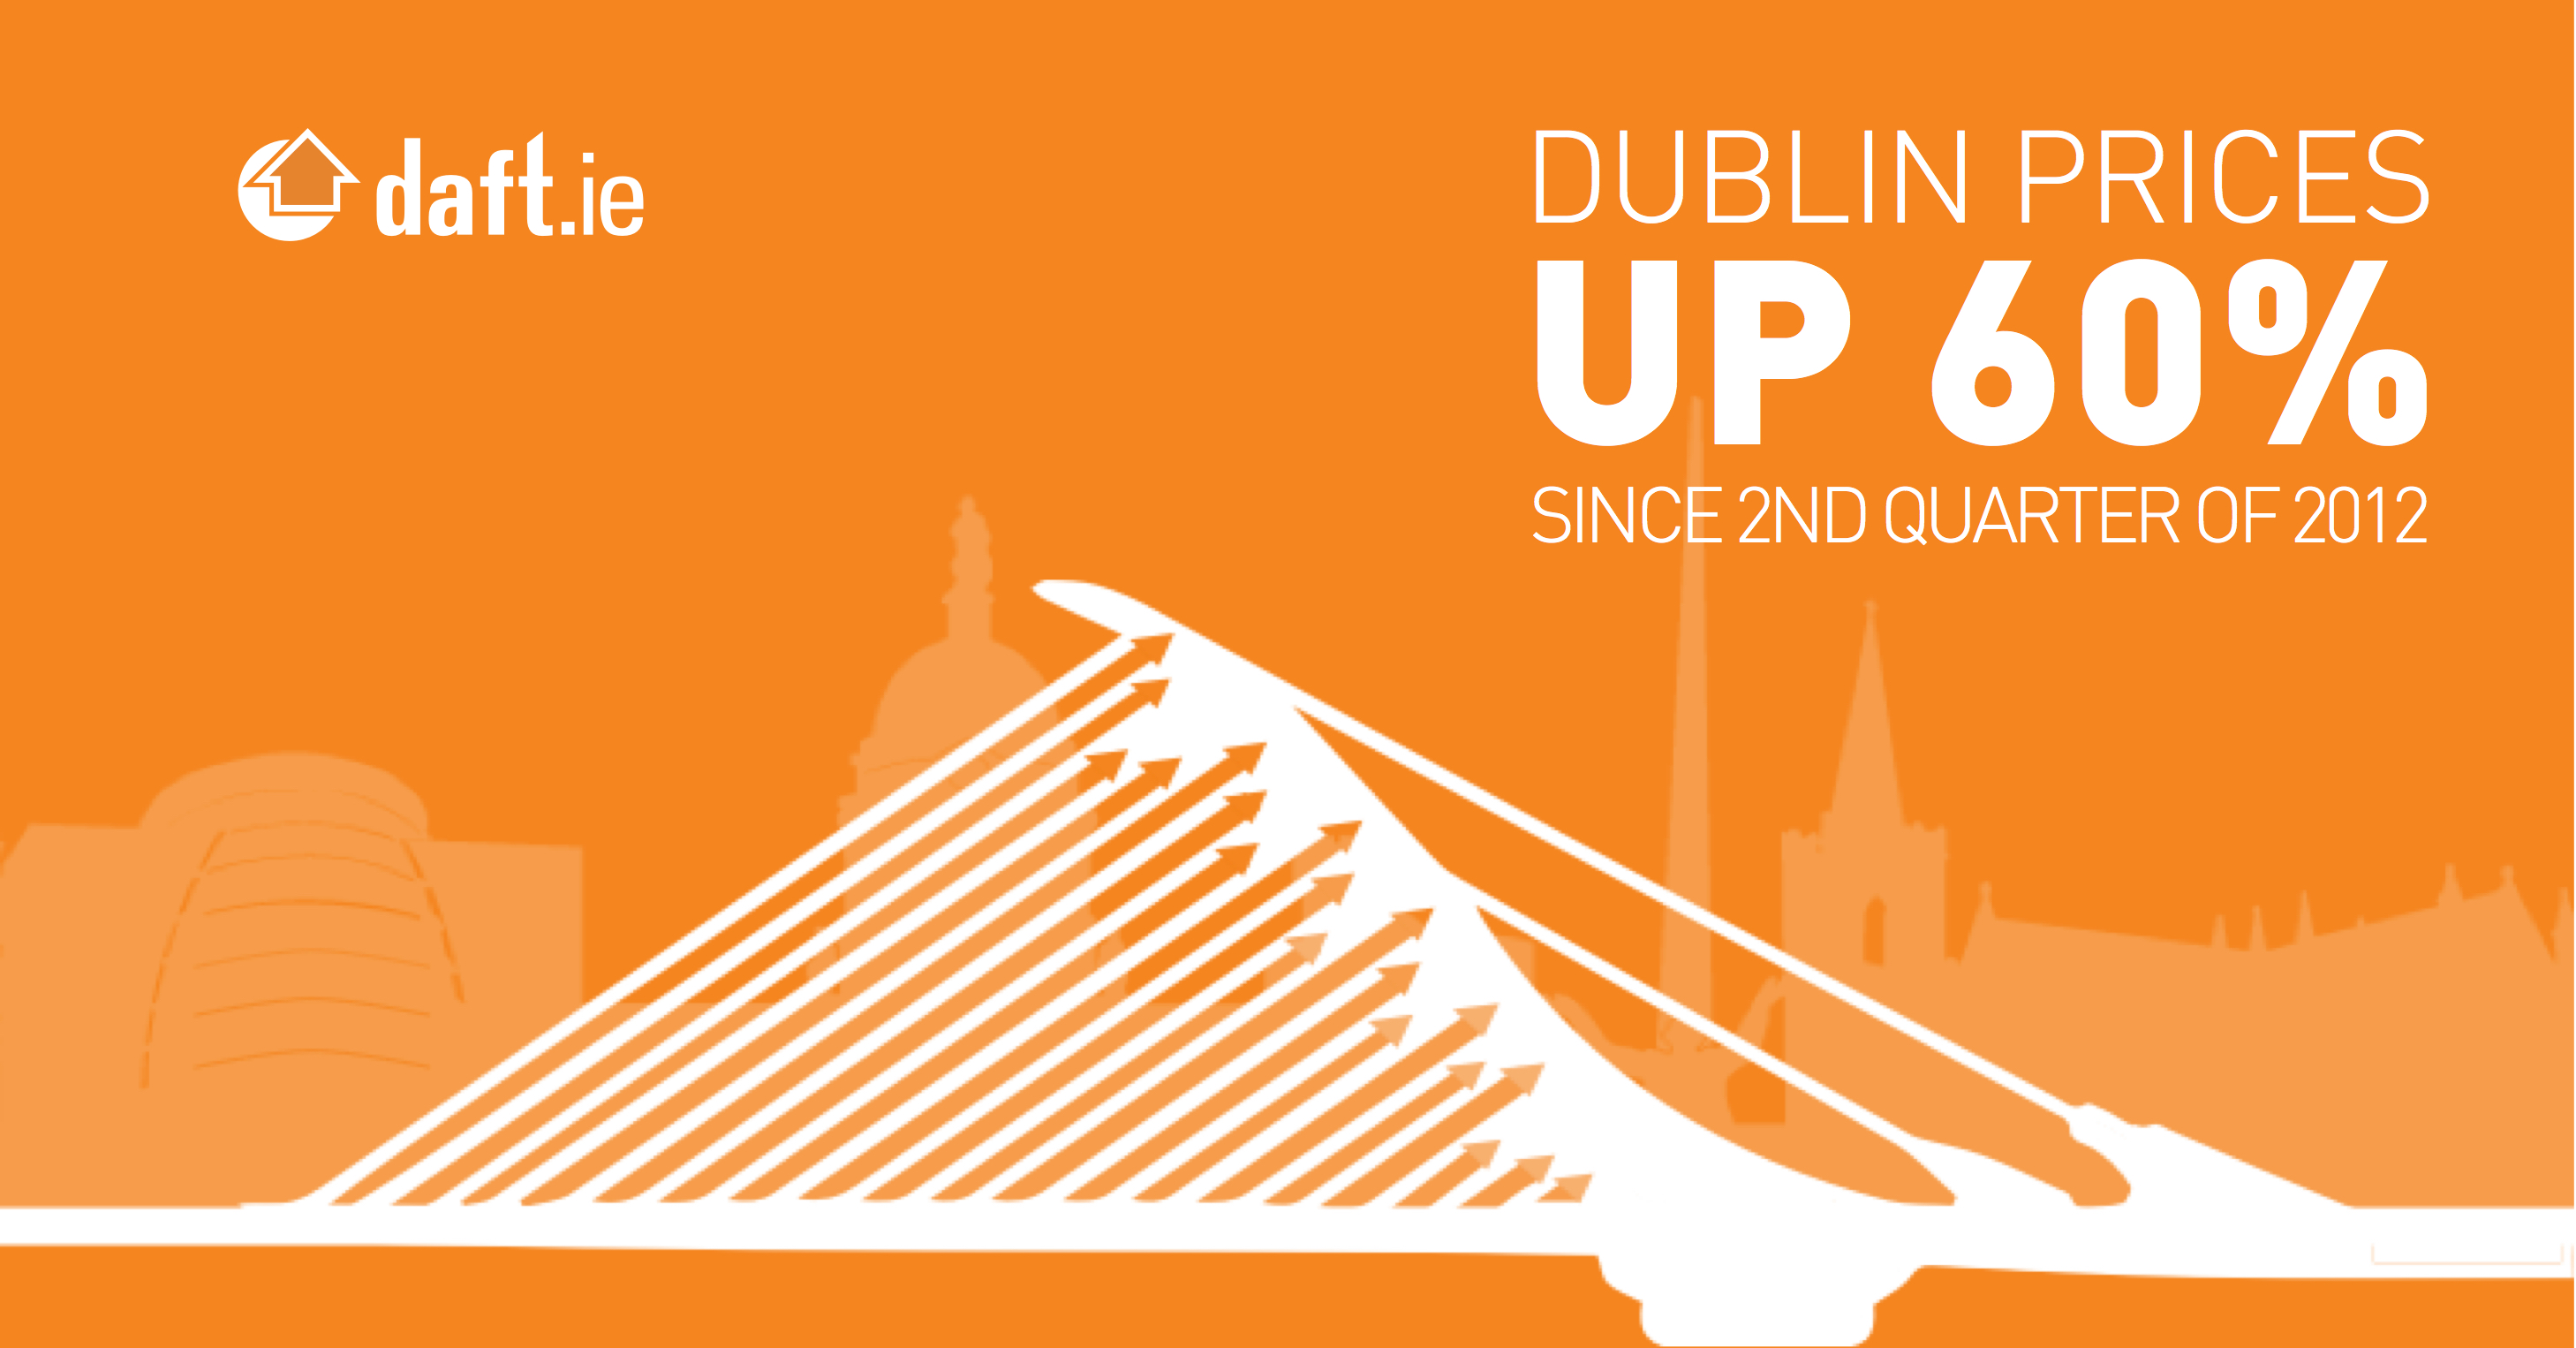 Dublin Prices up 60% since 2nd quater of 2012